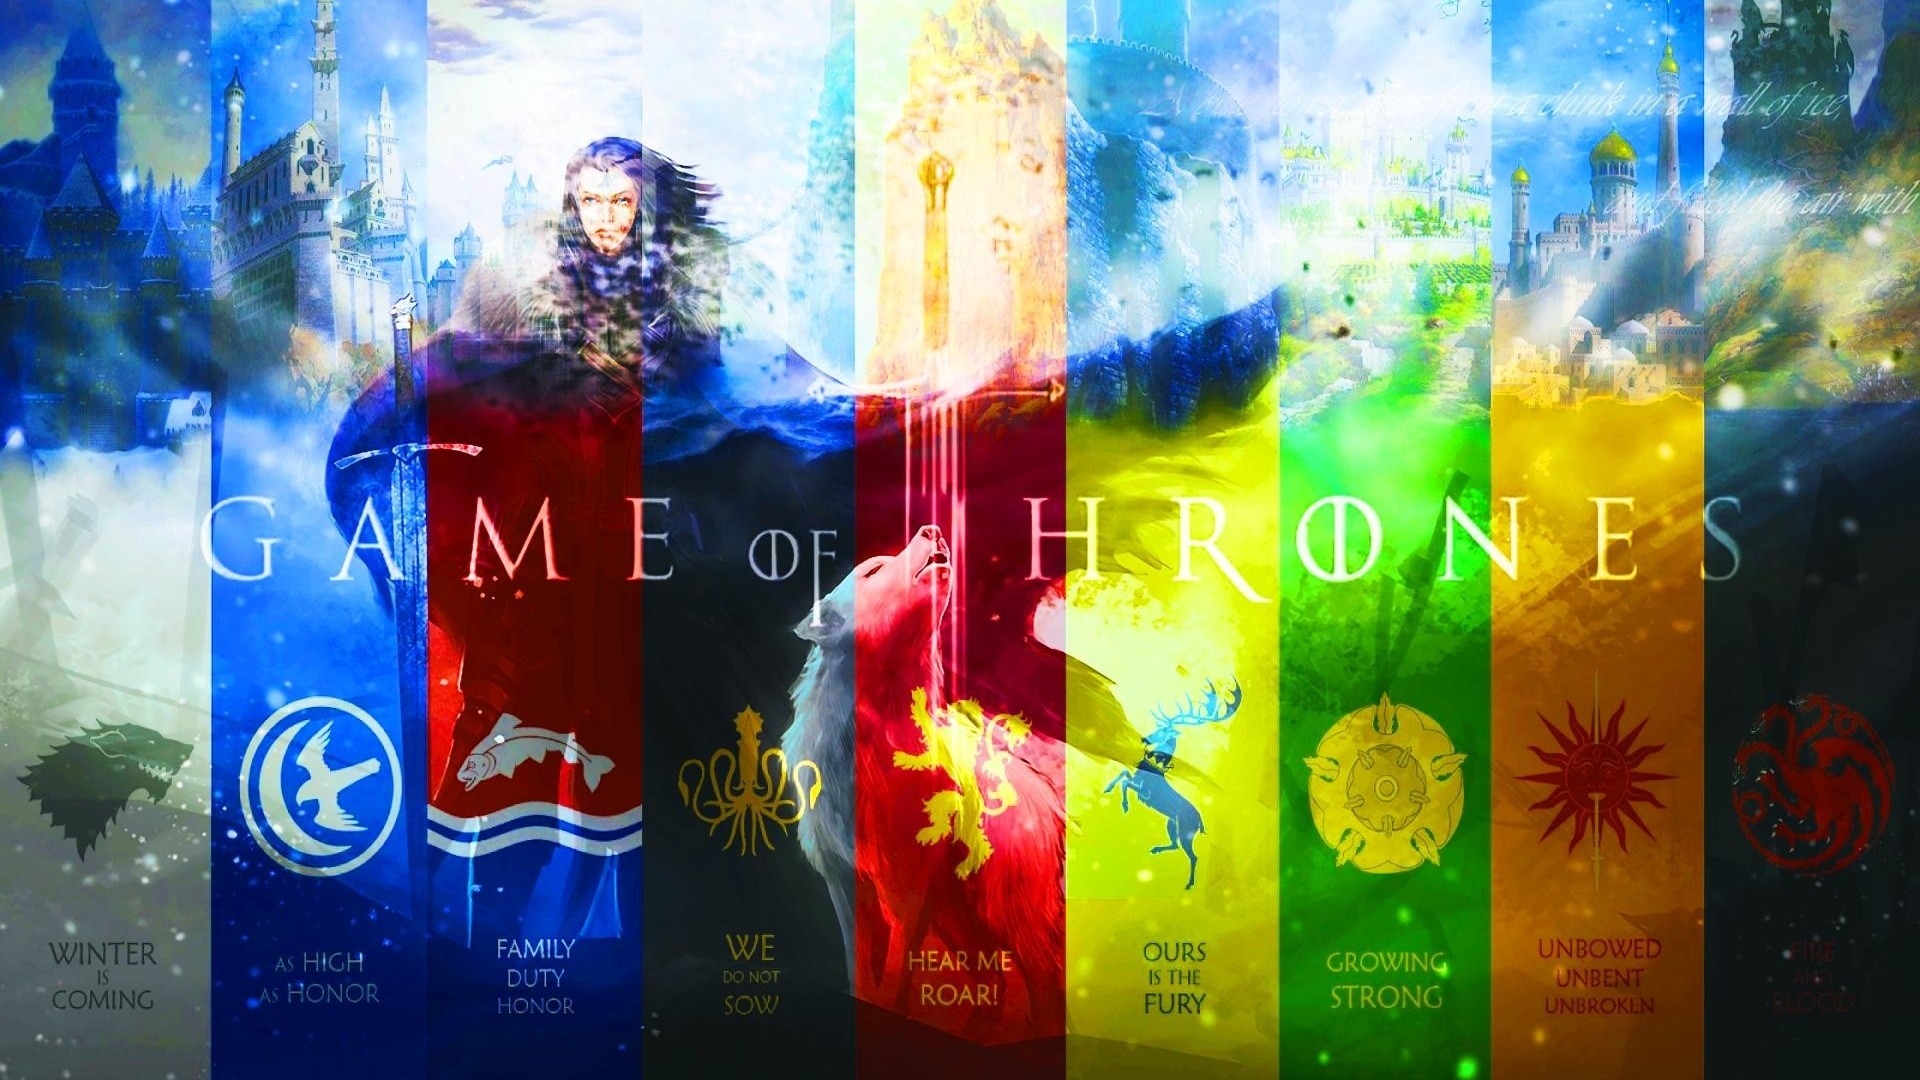 Wallpapers Hd Game Of Thrones Wallpaper: game of thrones